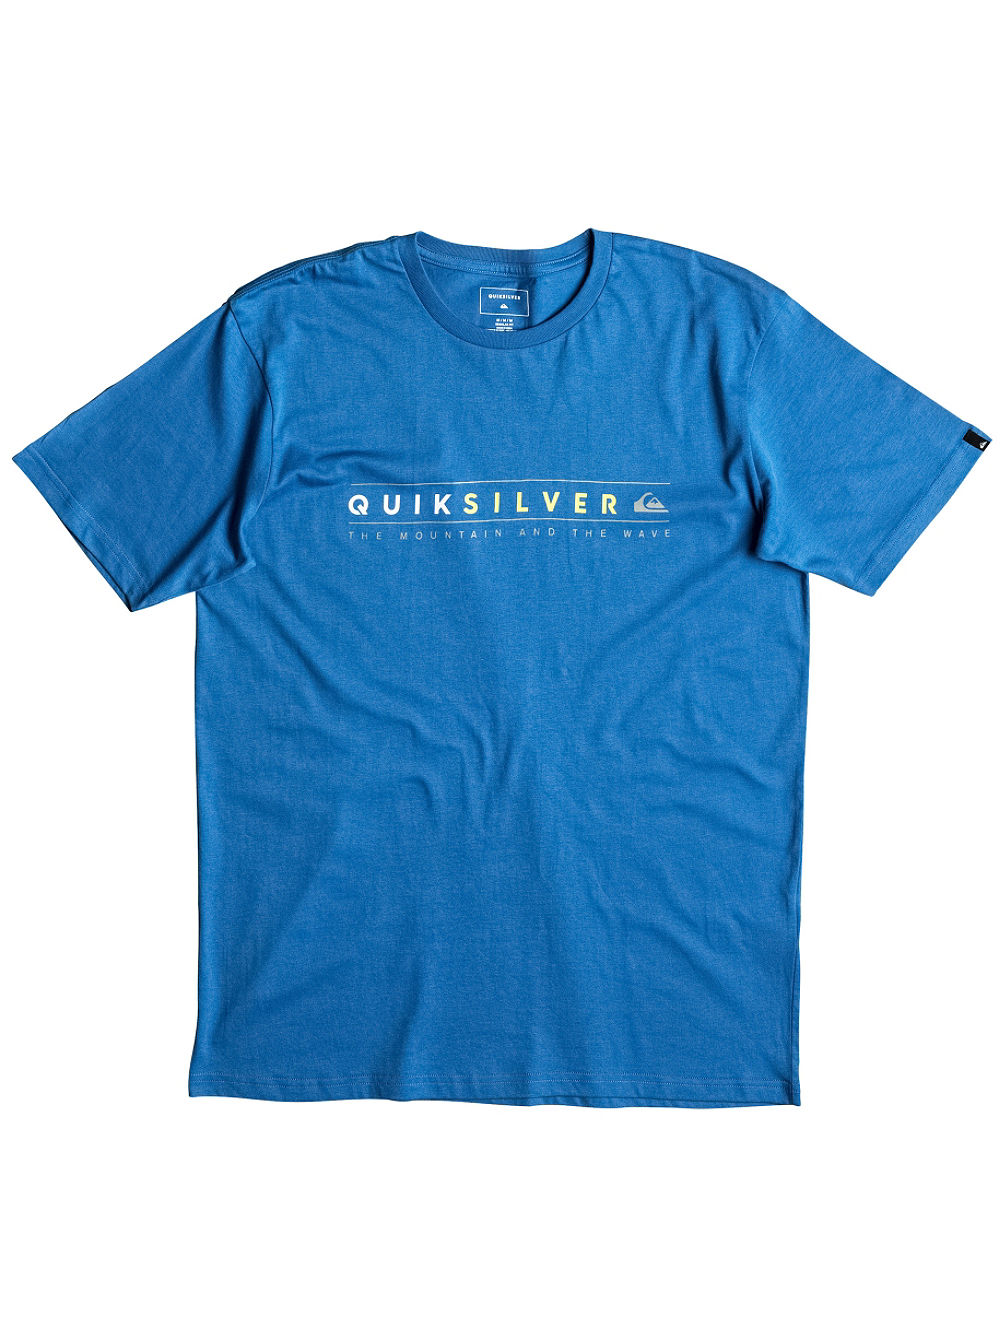 quiksilver-classic-always-clean-t-shirt